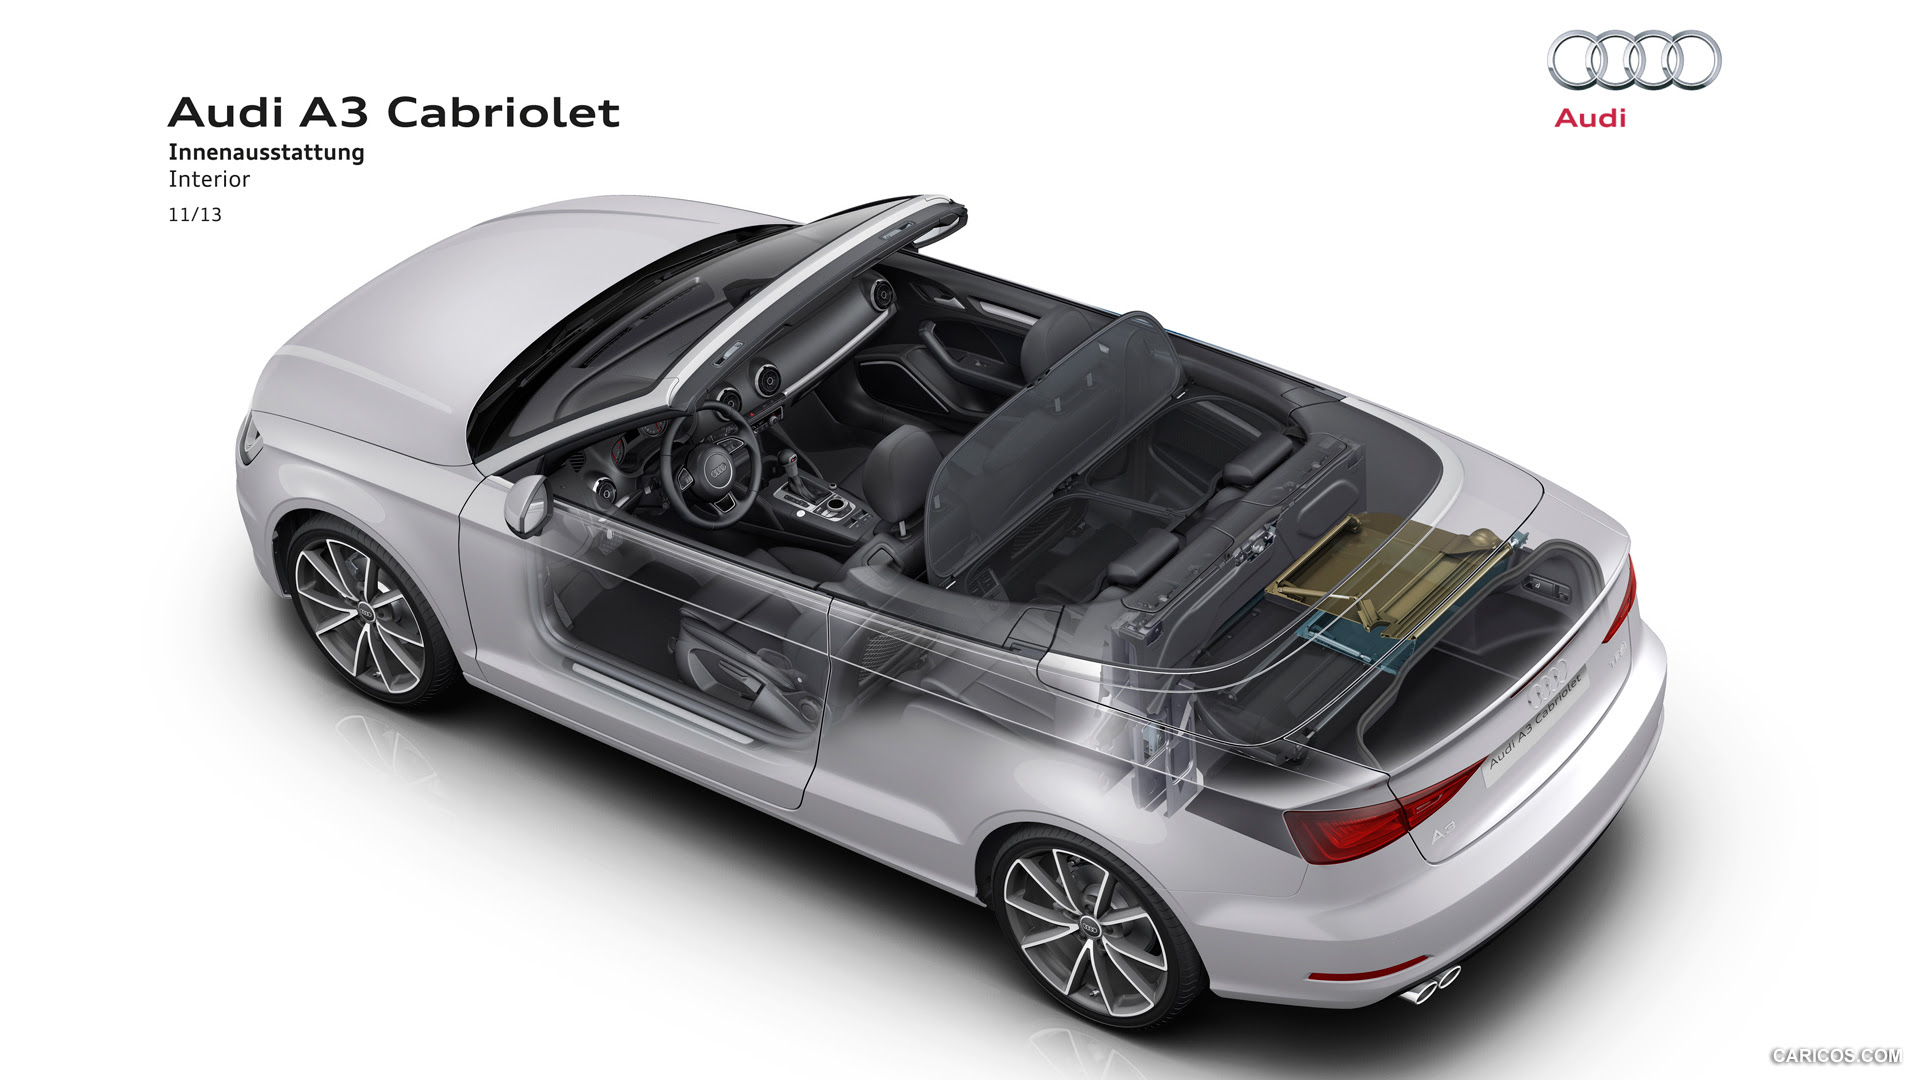 Audi A3 Cabriolet (2015) - Interior | HD Wallpaper #72 | 1920x1080